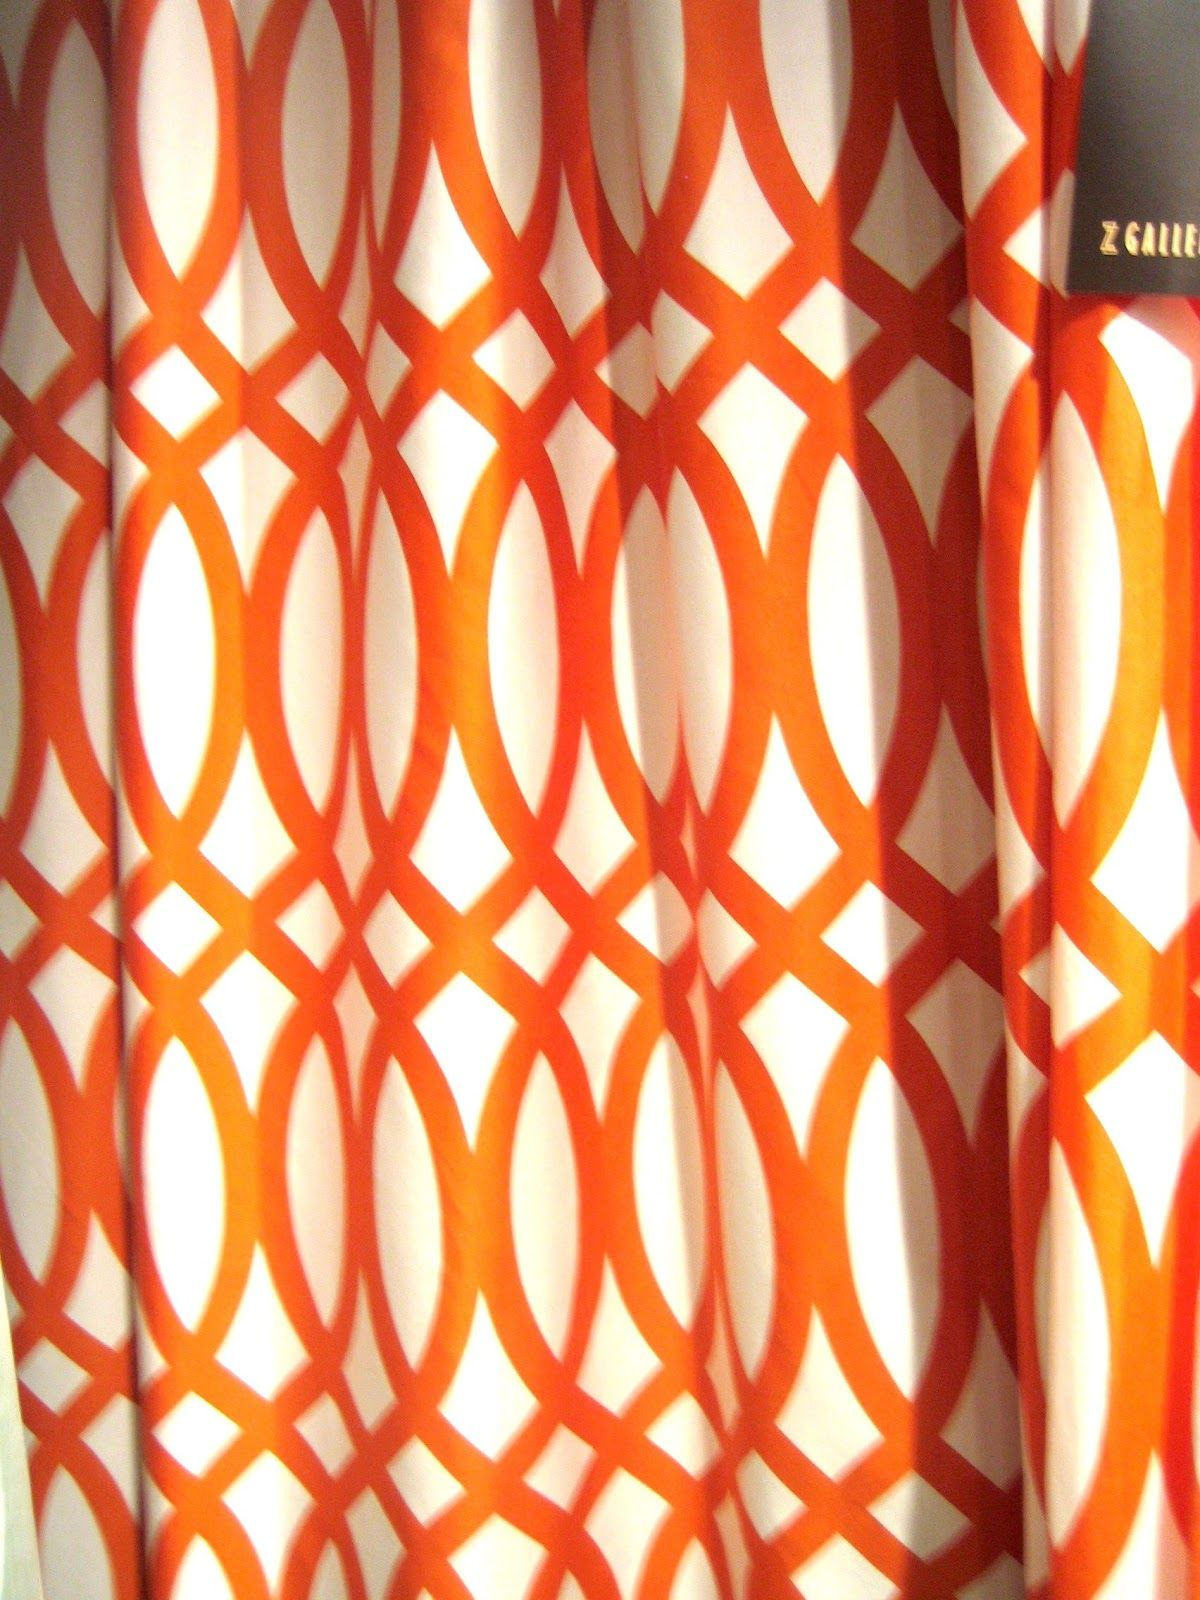 captivating orange curtains for decorating and covering ideas captivating moroccan style orange curtains for drapes